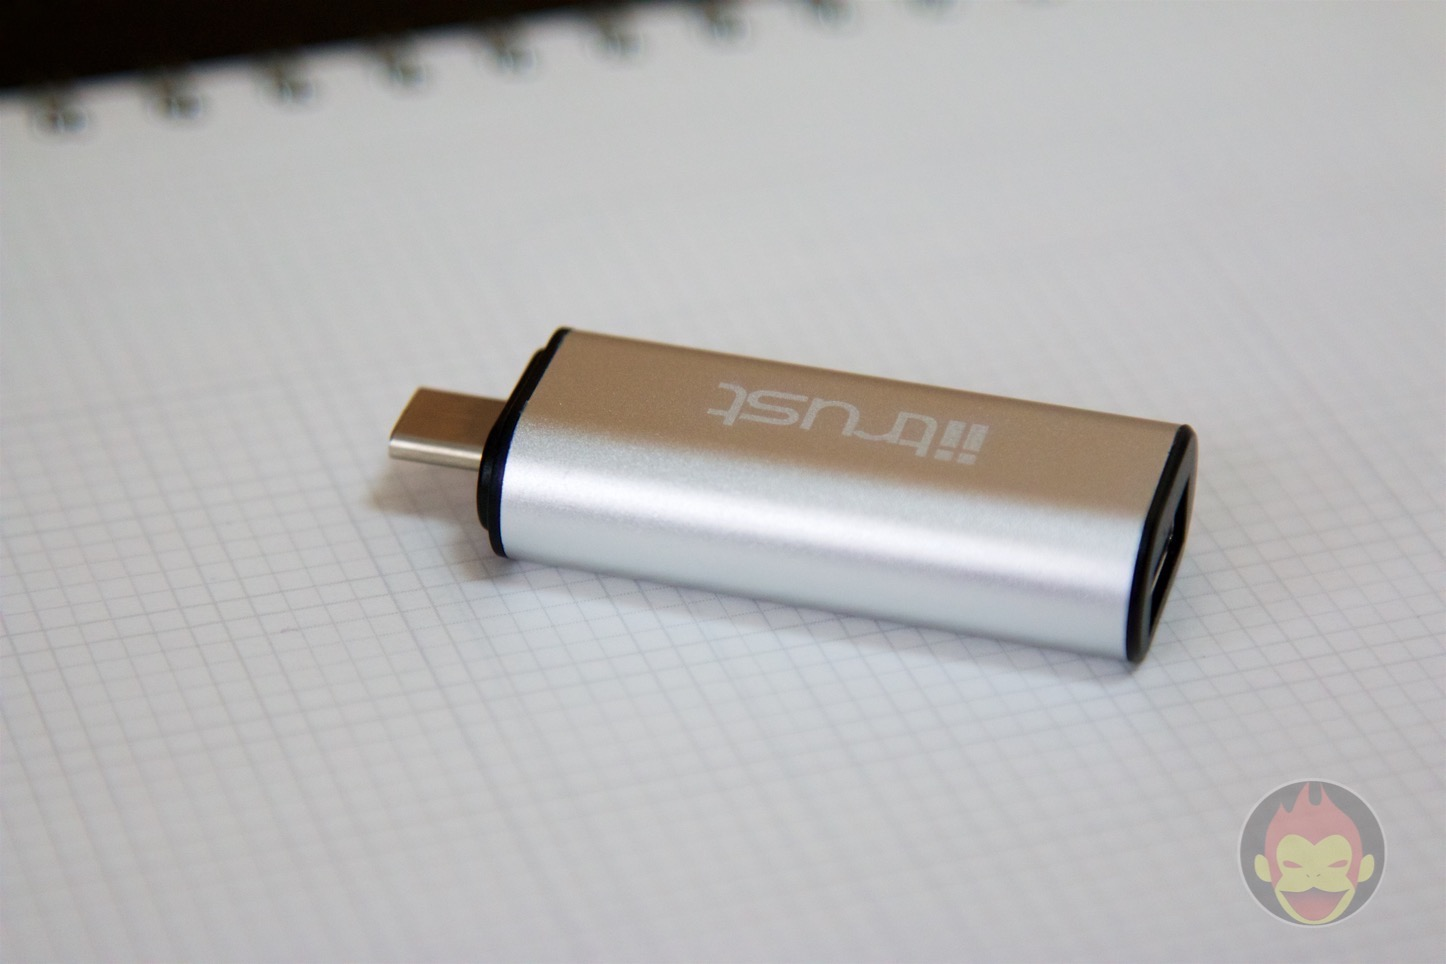 Iitrust MacBook USB Adapter